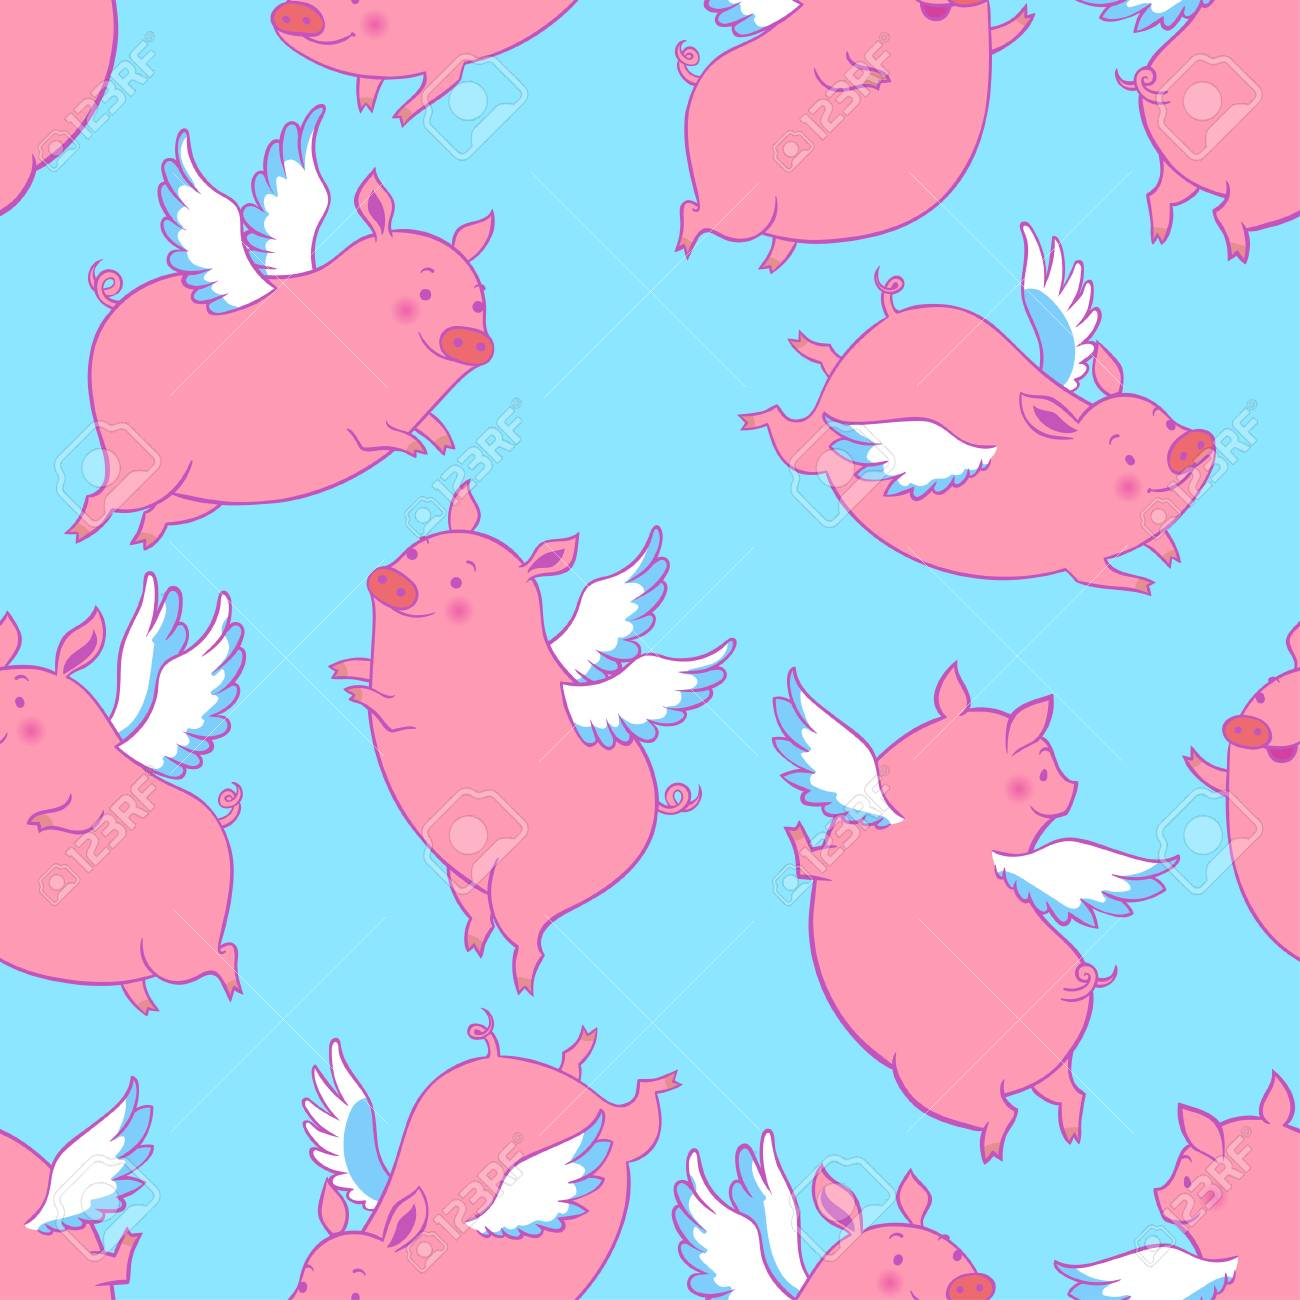 Cute flying winged piglets.Vector seamless pattern. - 112277565